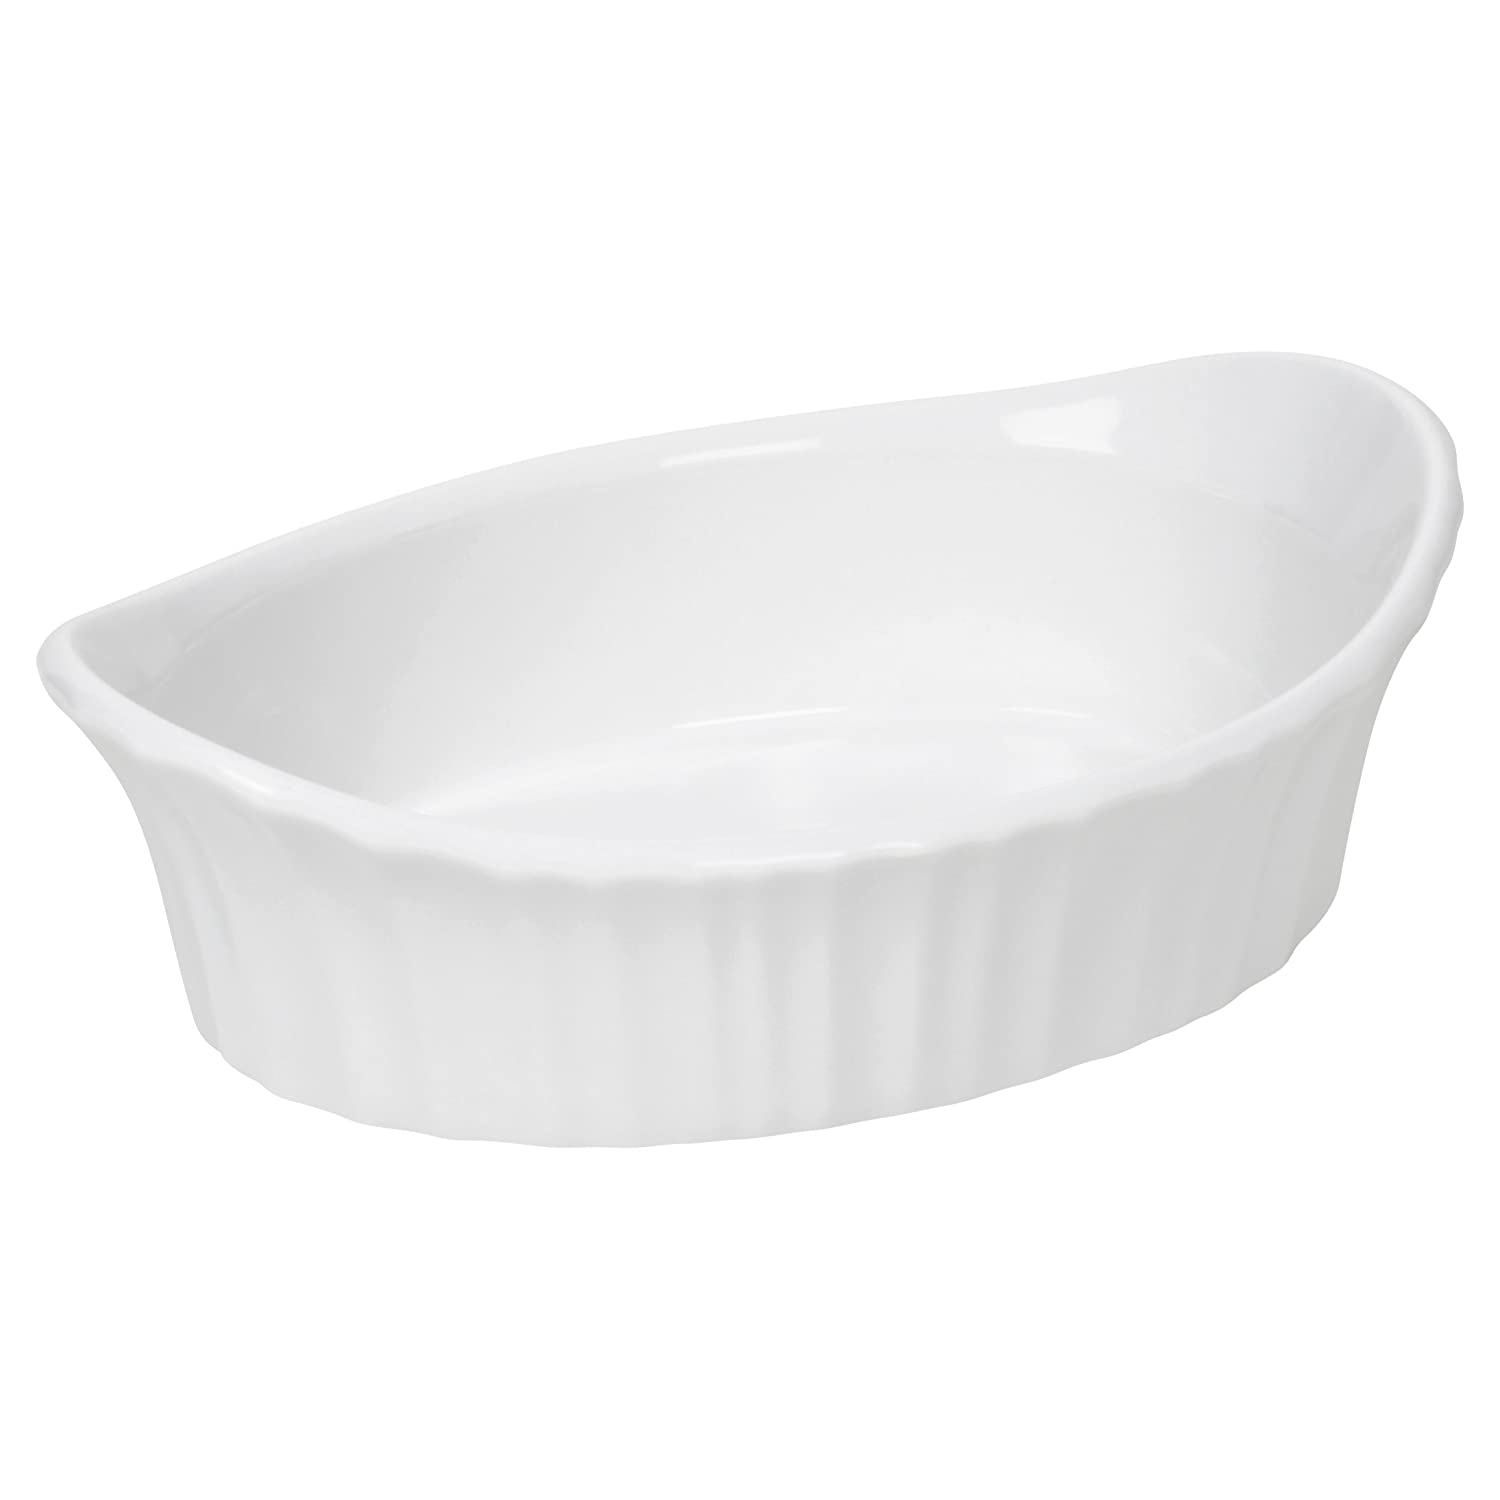 Corningware French Weiß III 18.6-Ounce Appetizer Dish by CorningWare